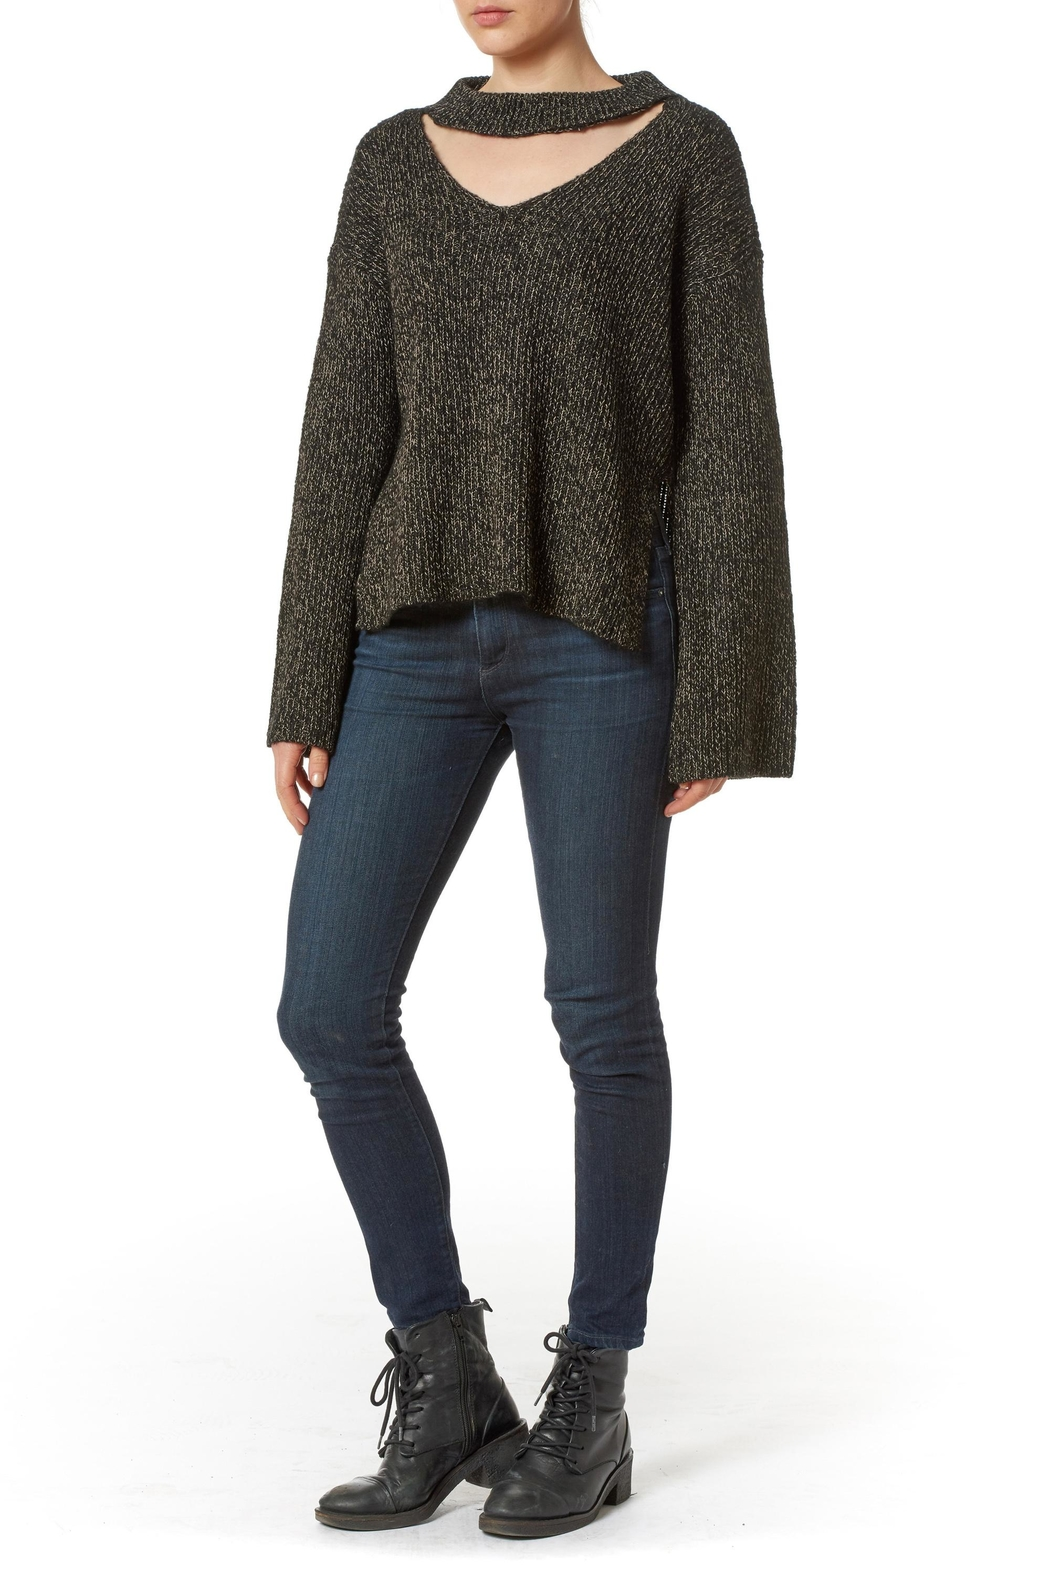 J HARPER Choker Collar Sweater - Front Cropped Image